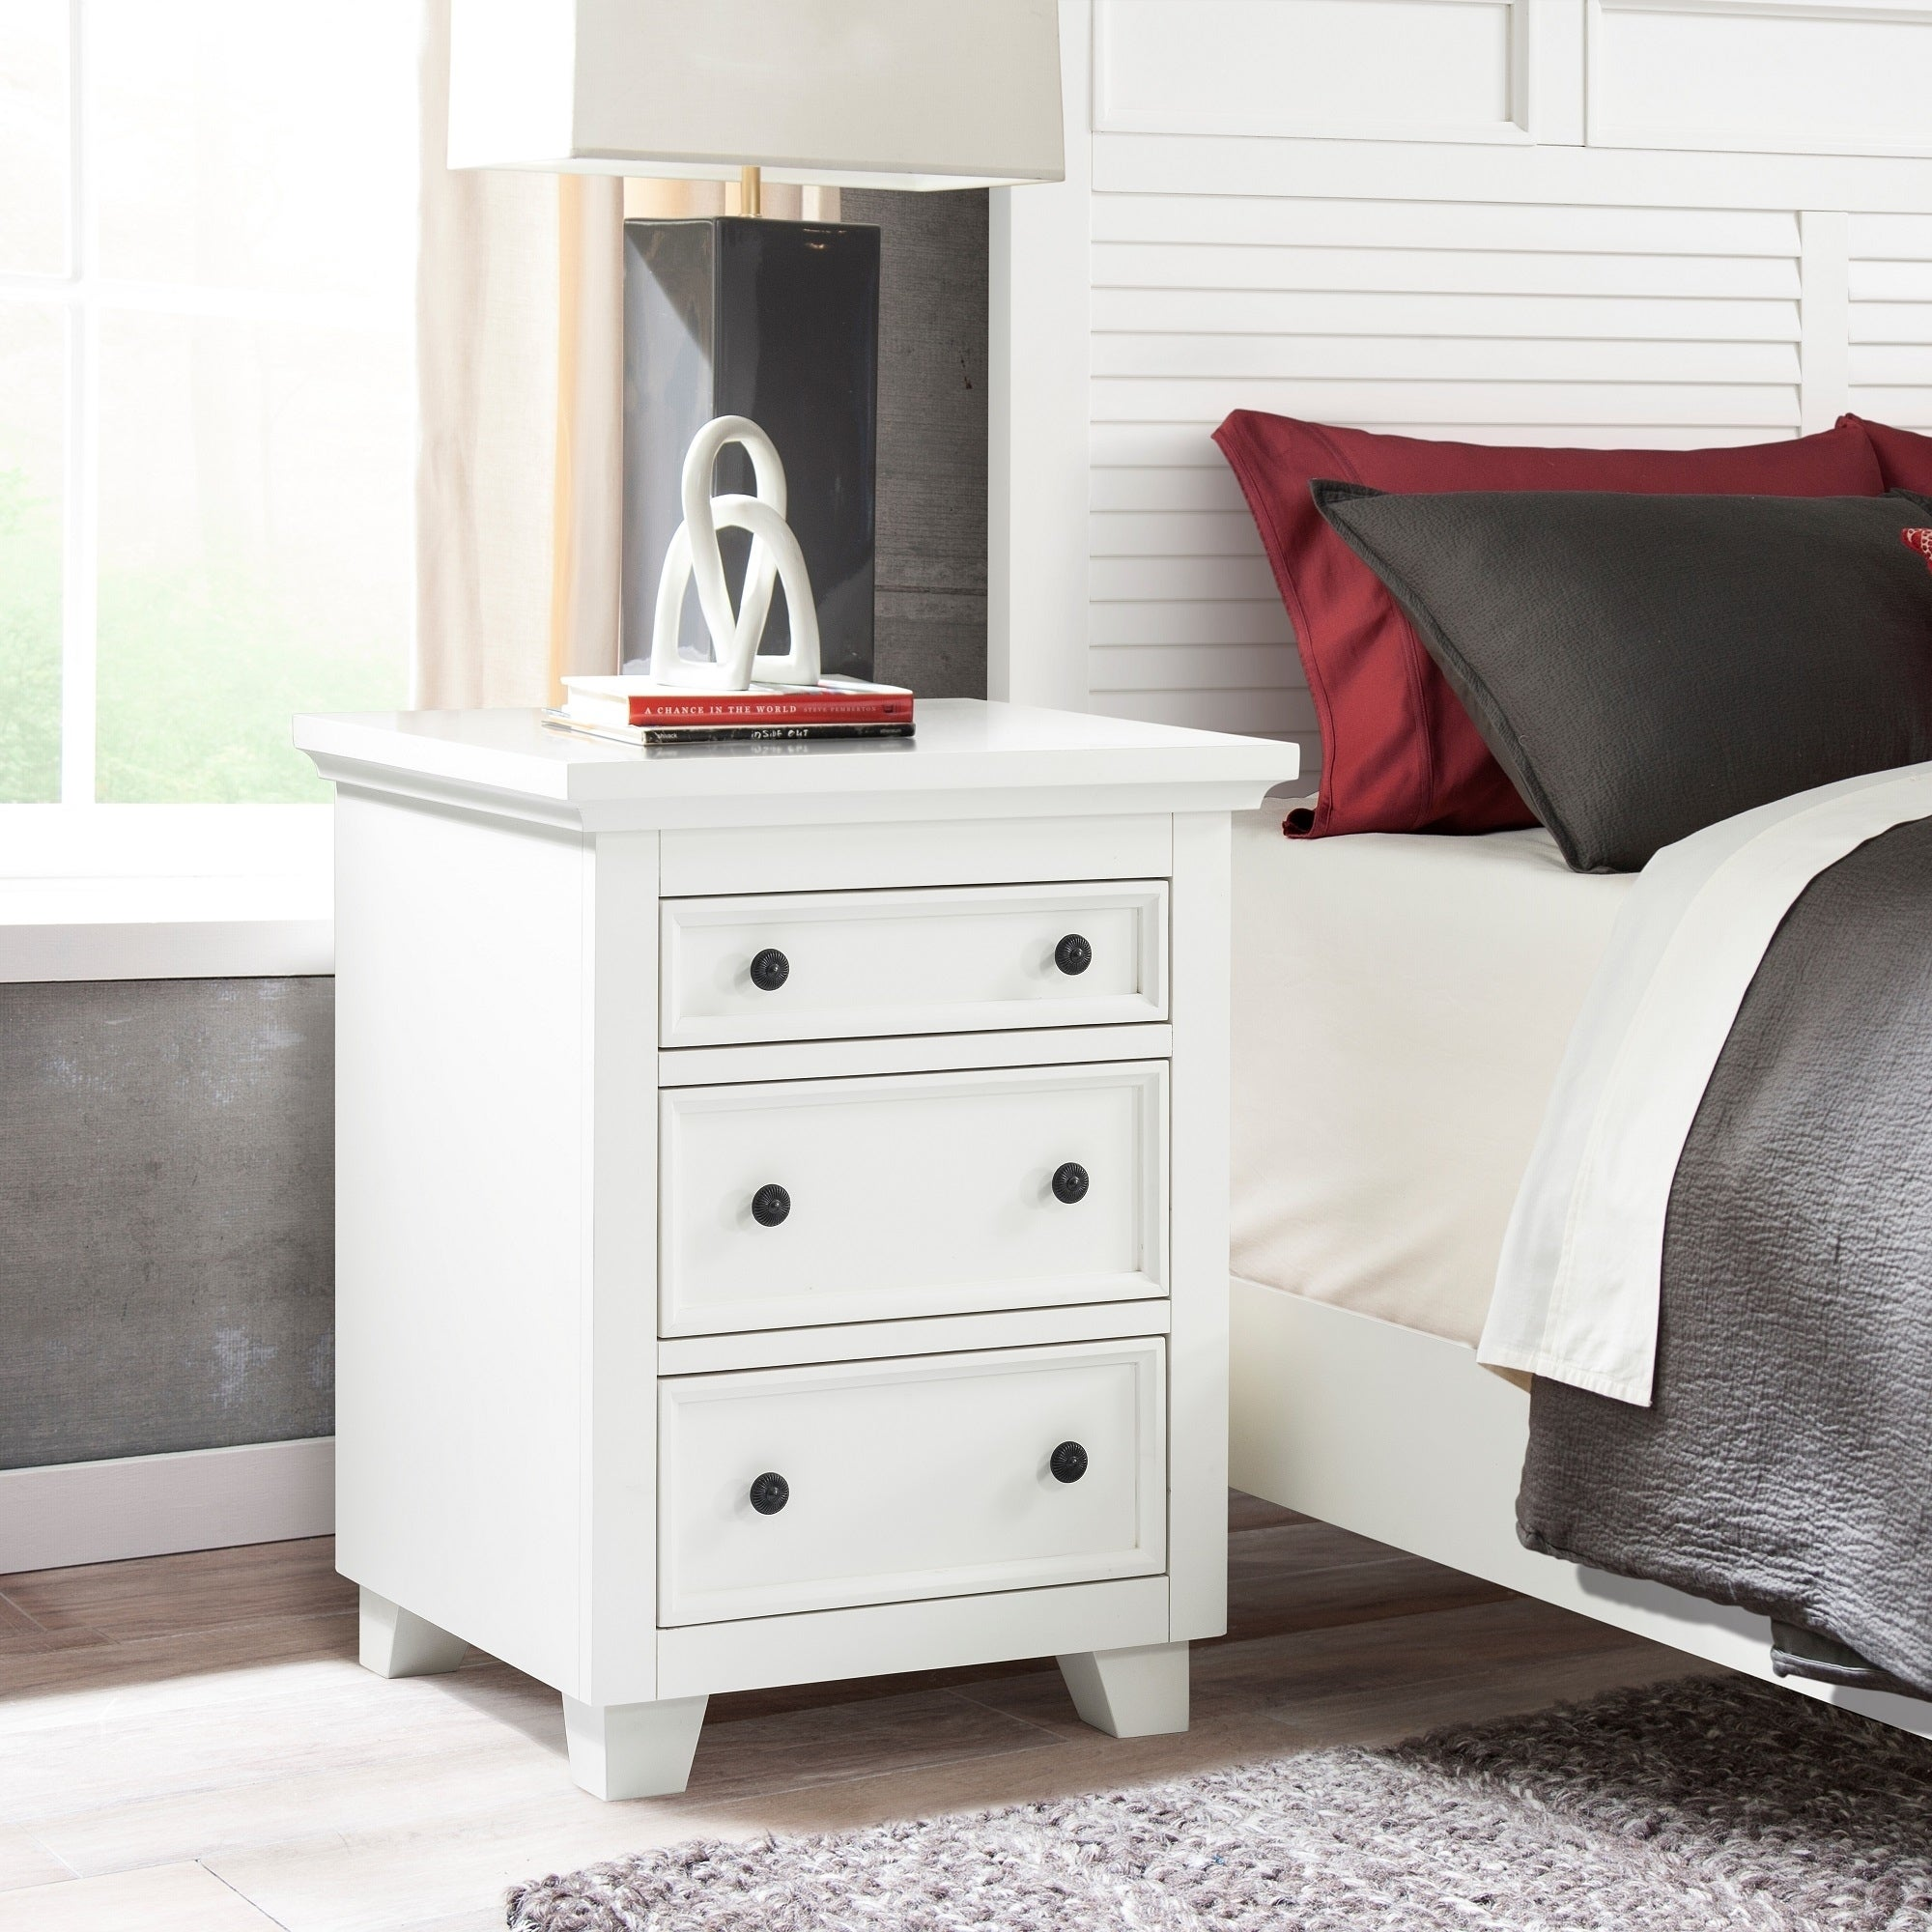 Bermuda Dunes 3 Drawer Nightstand French White